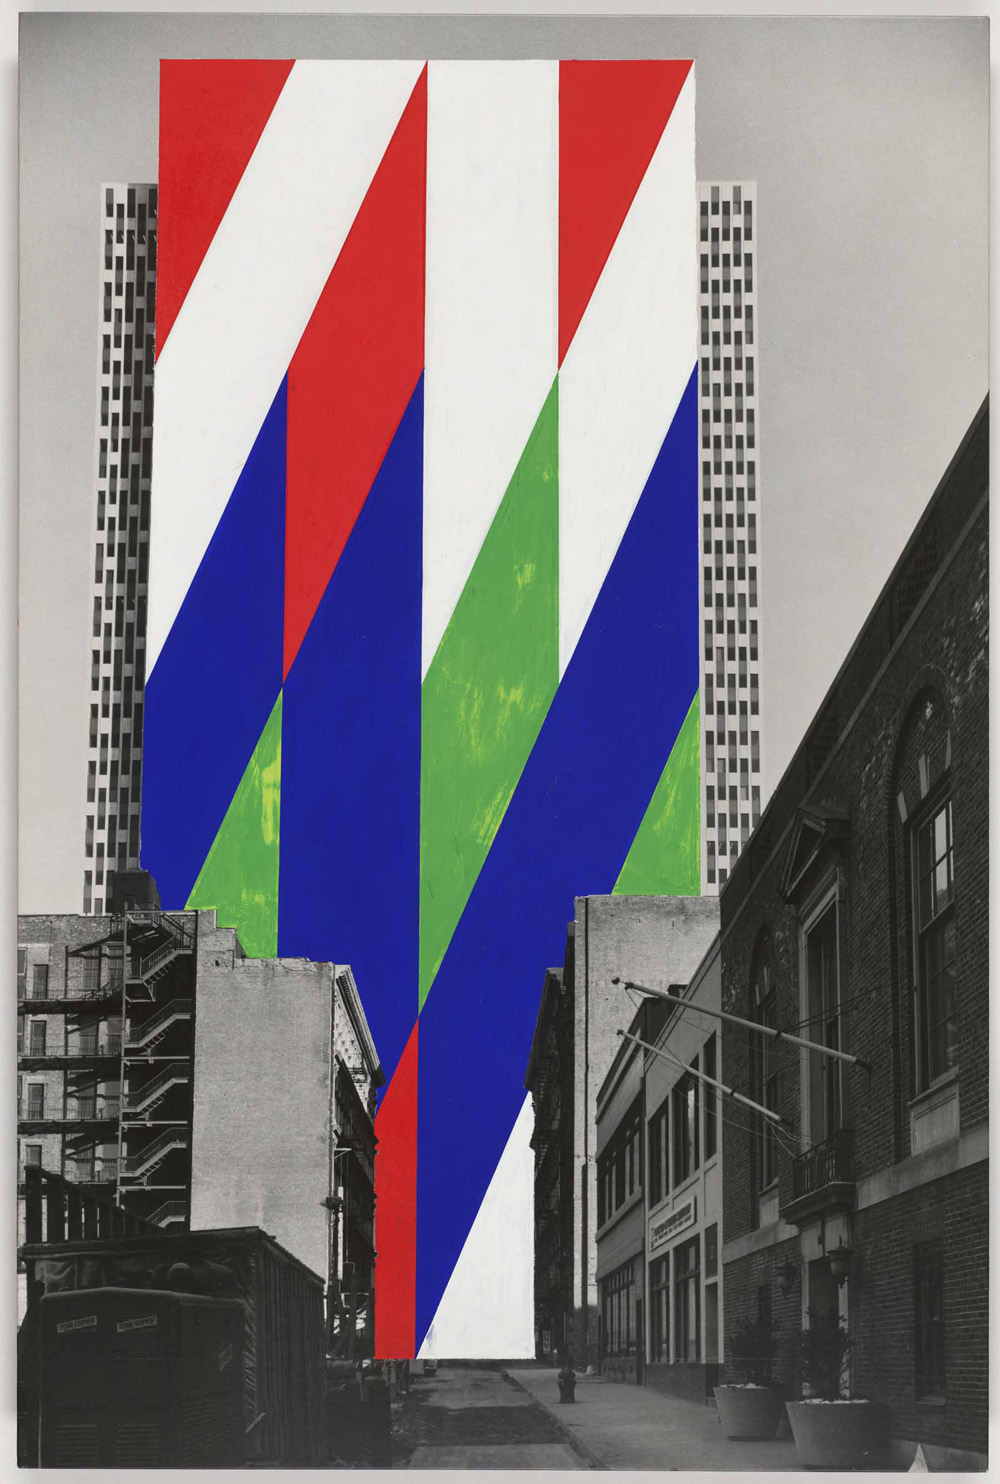 Jason Crum (American, 1935-2004). Project for a Painted Wall, New York City, New York. Perspective. 1969. Gouache on photograph. 30 x 20″ (76.2 x 50.8 cm). The Museum of Modern Art, New York. Purchase, 1969